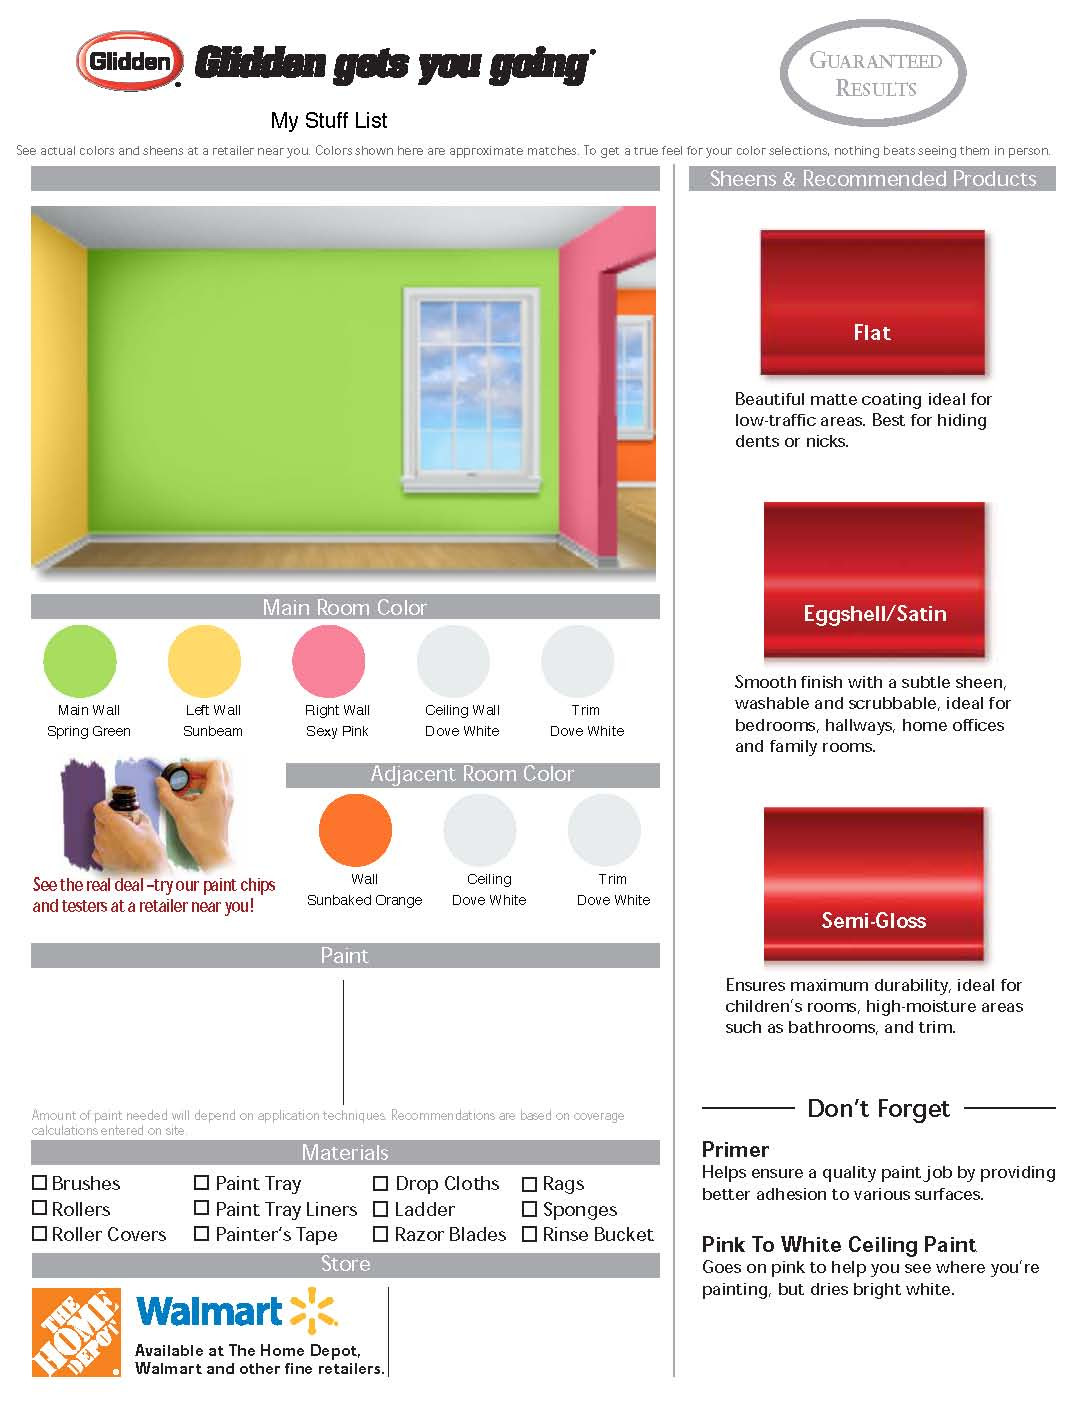 Best ideas about Glidden Paint Colors . Save or Pin glidden paint colors 2017 Grasscloth Wallpaper Now.